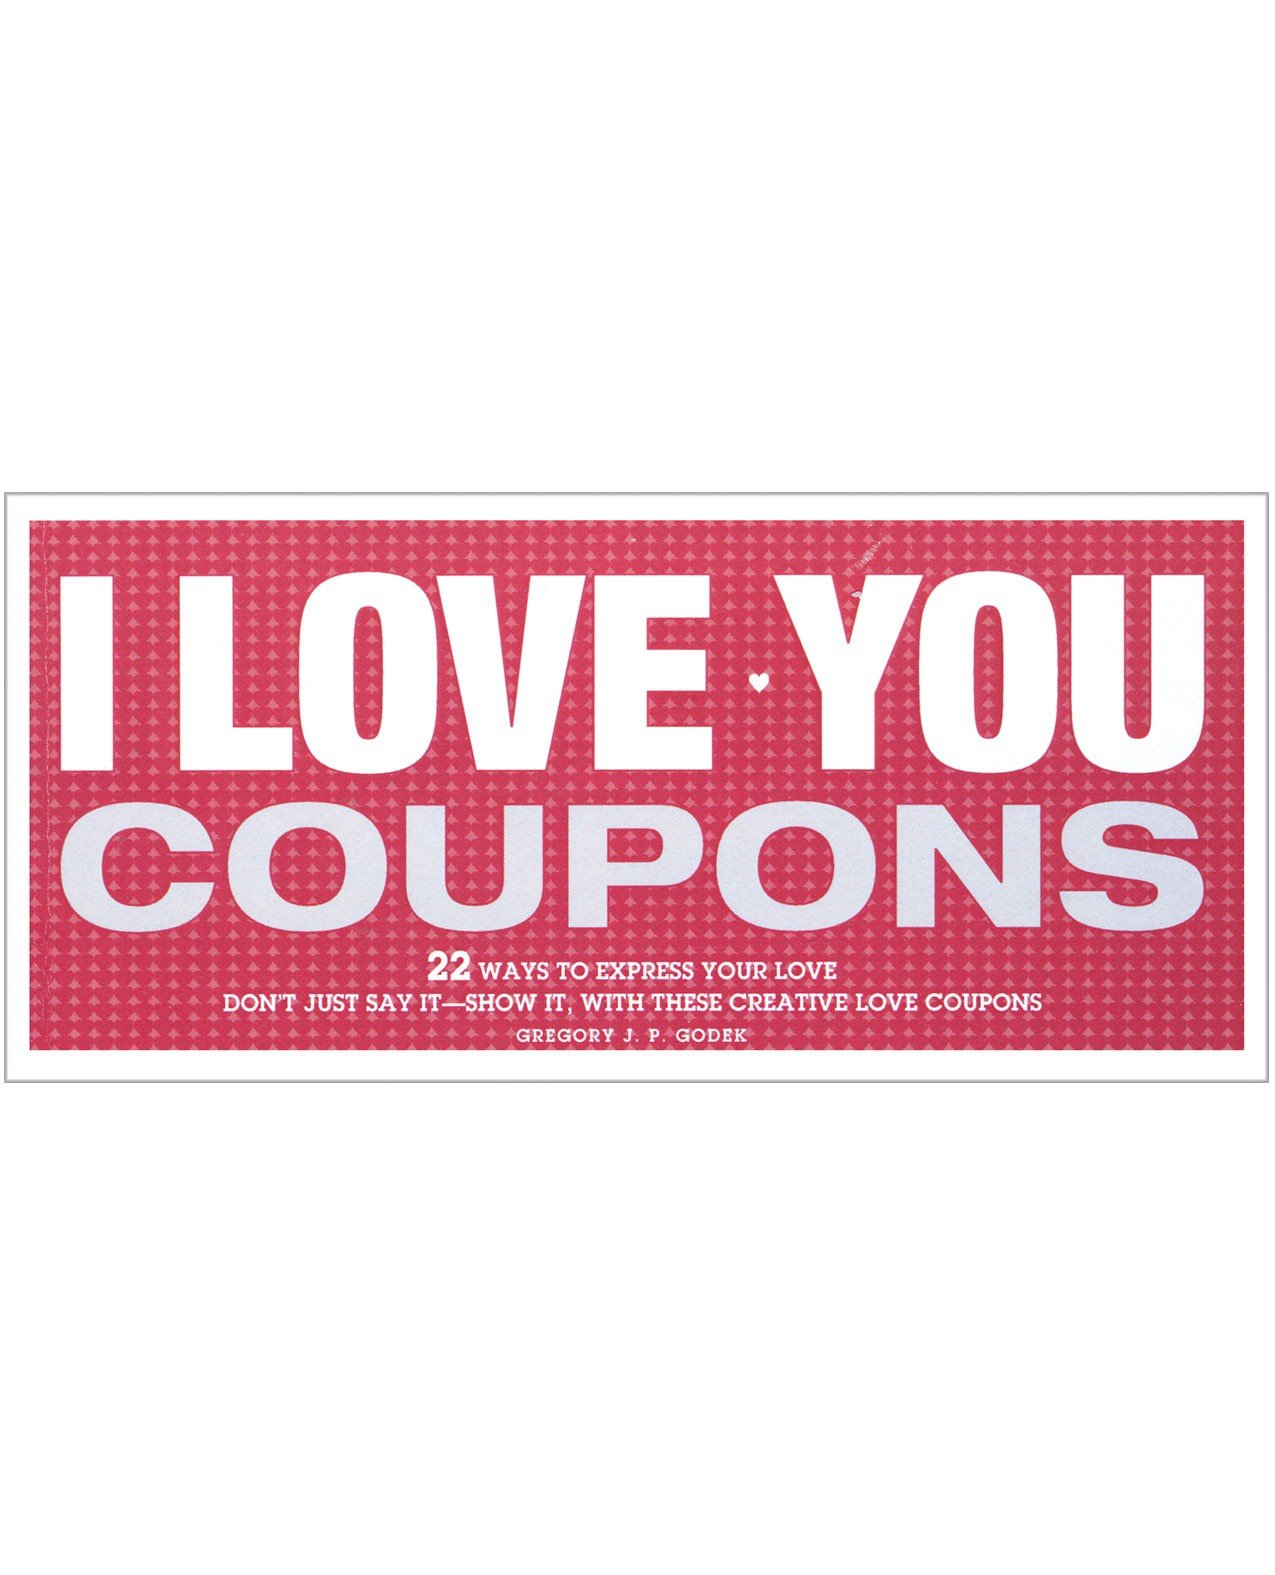 Current coupon codes